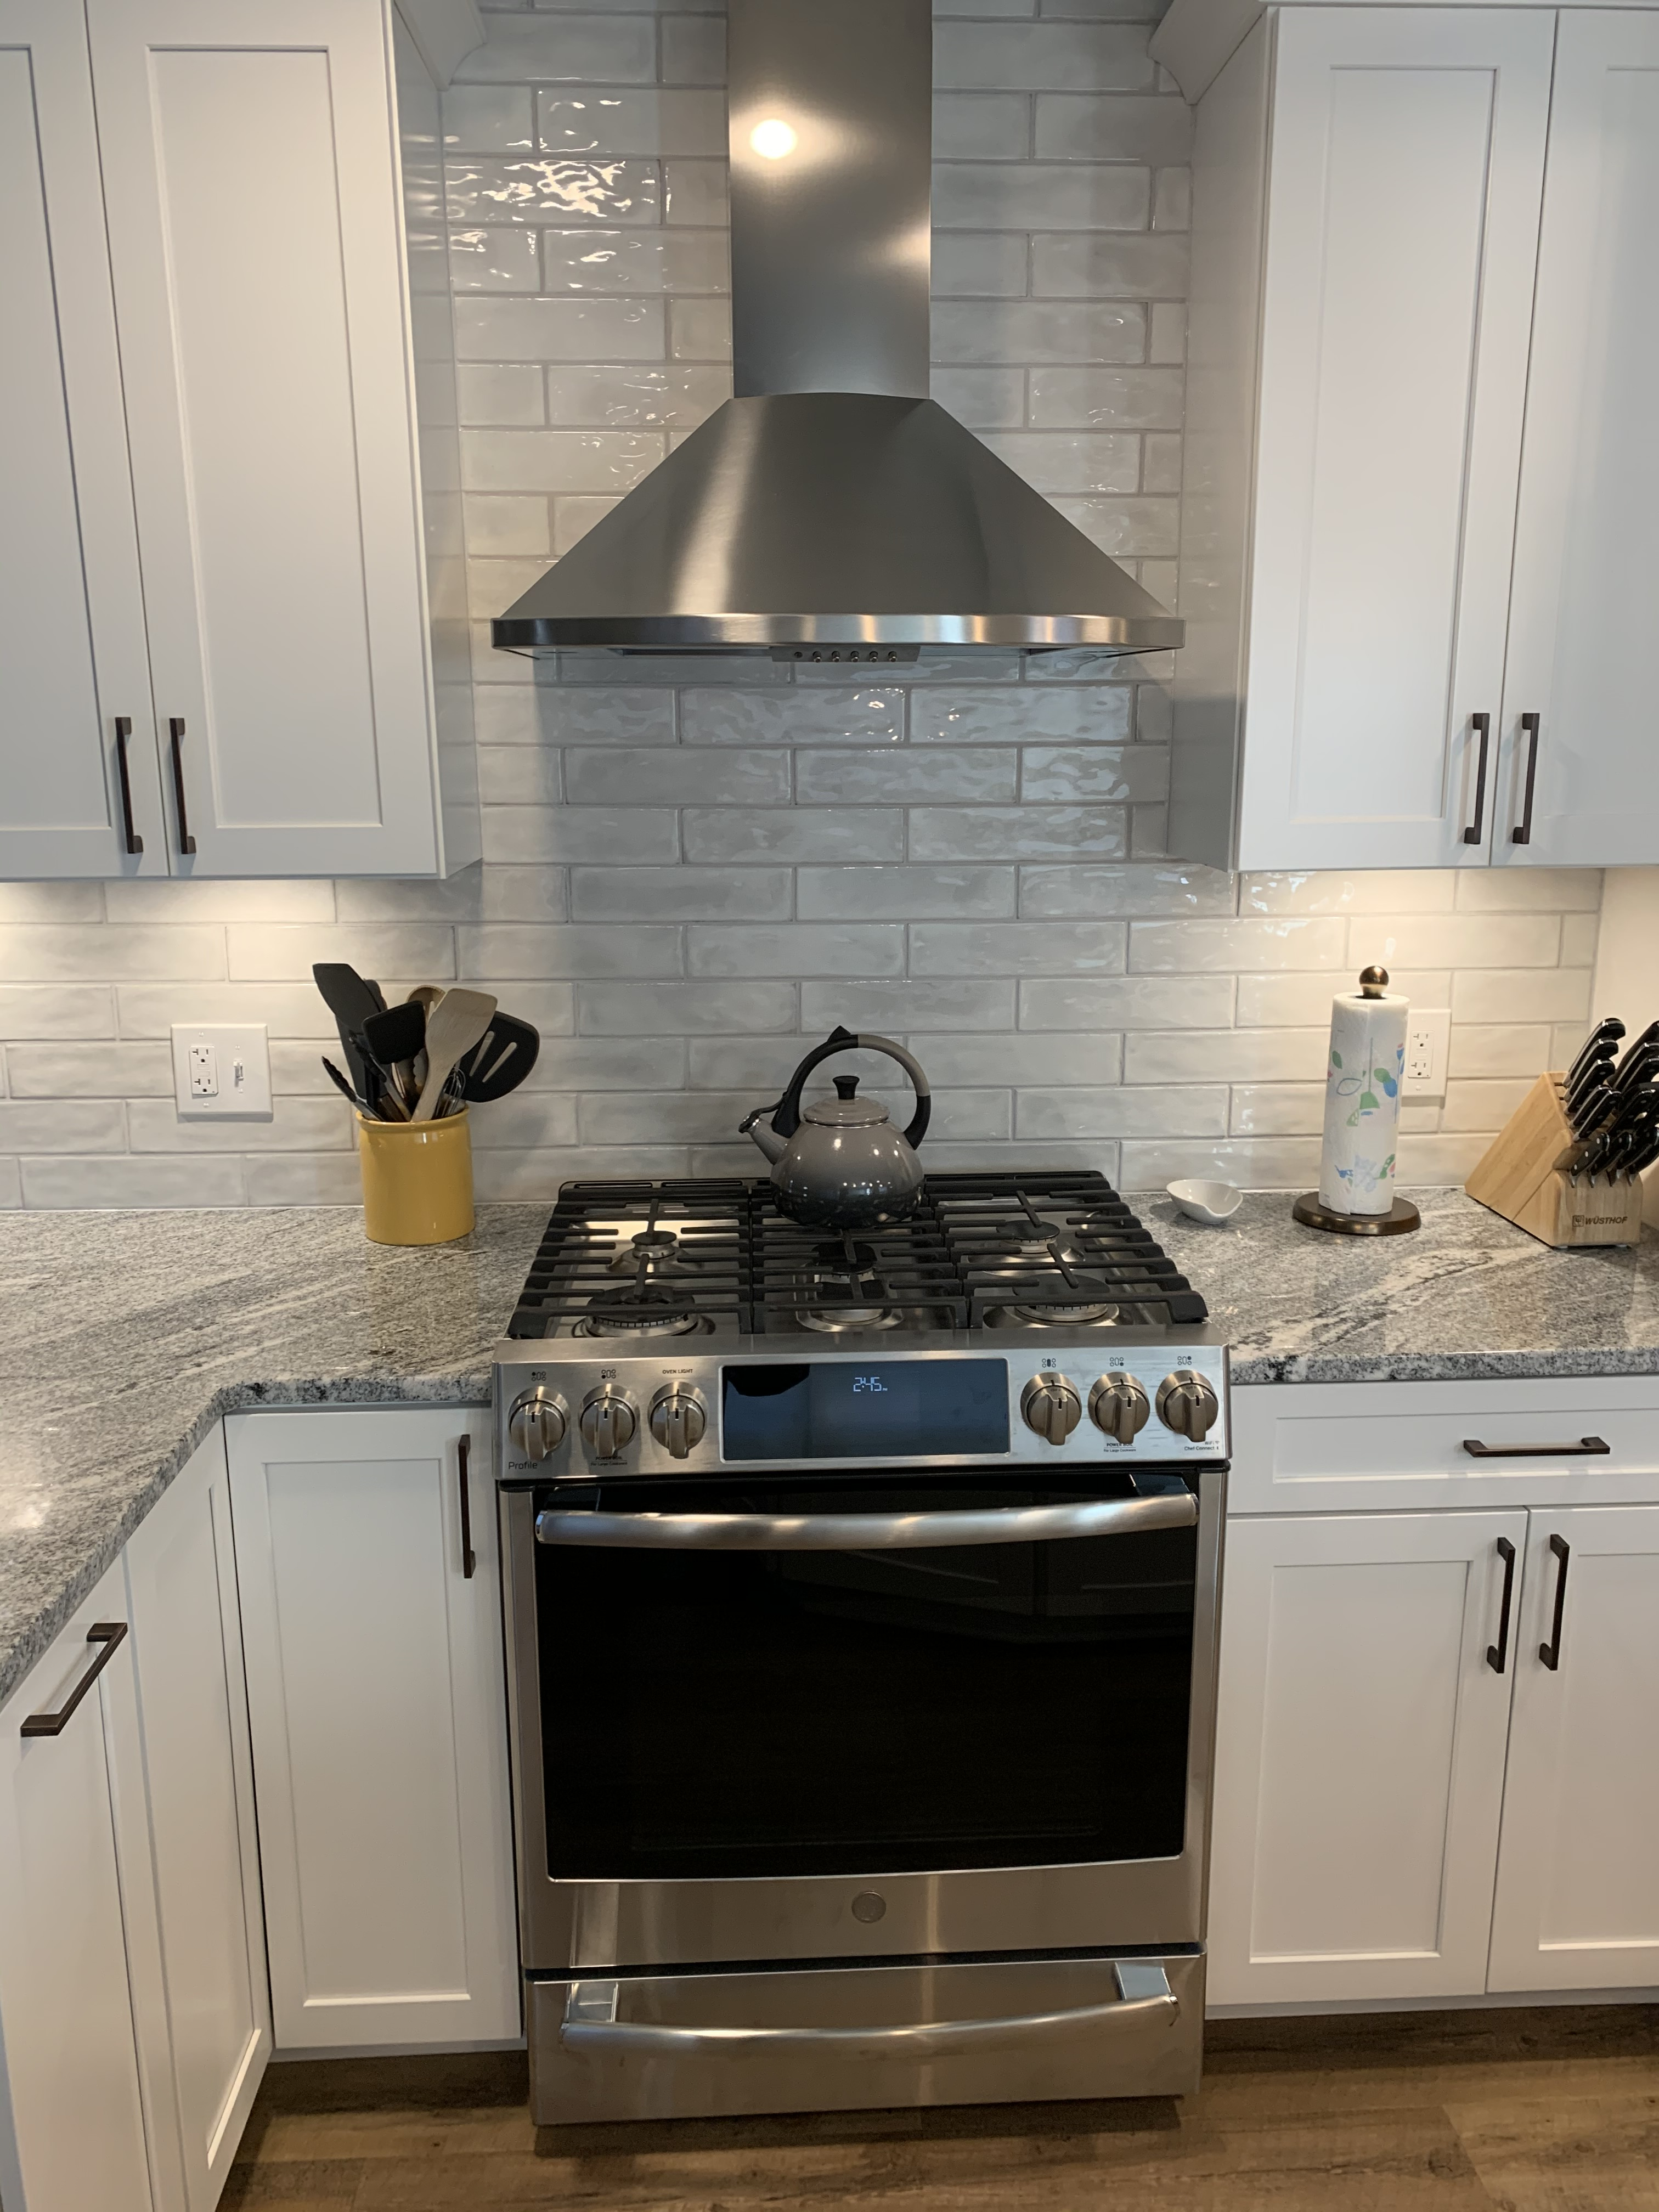 Backsplash and stove.